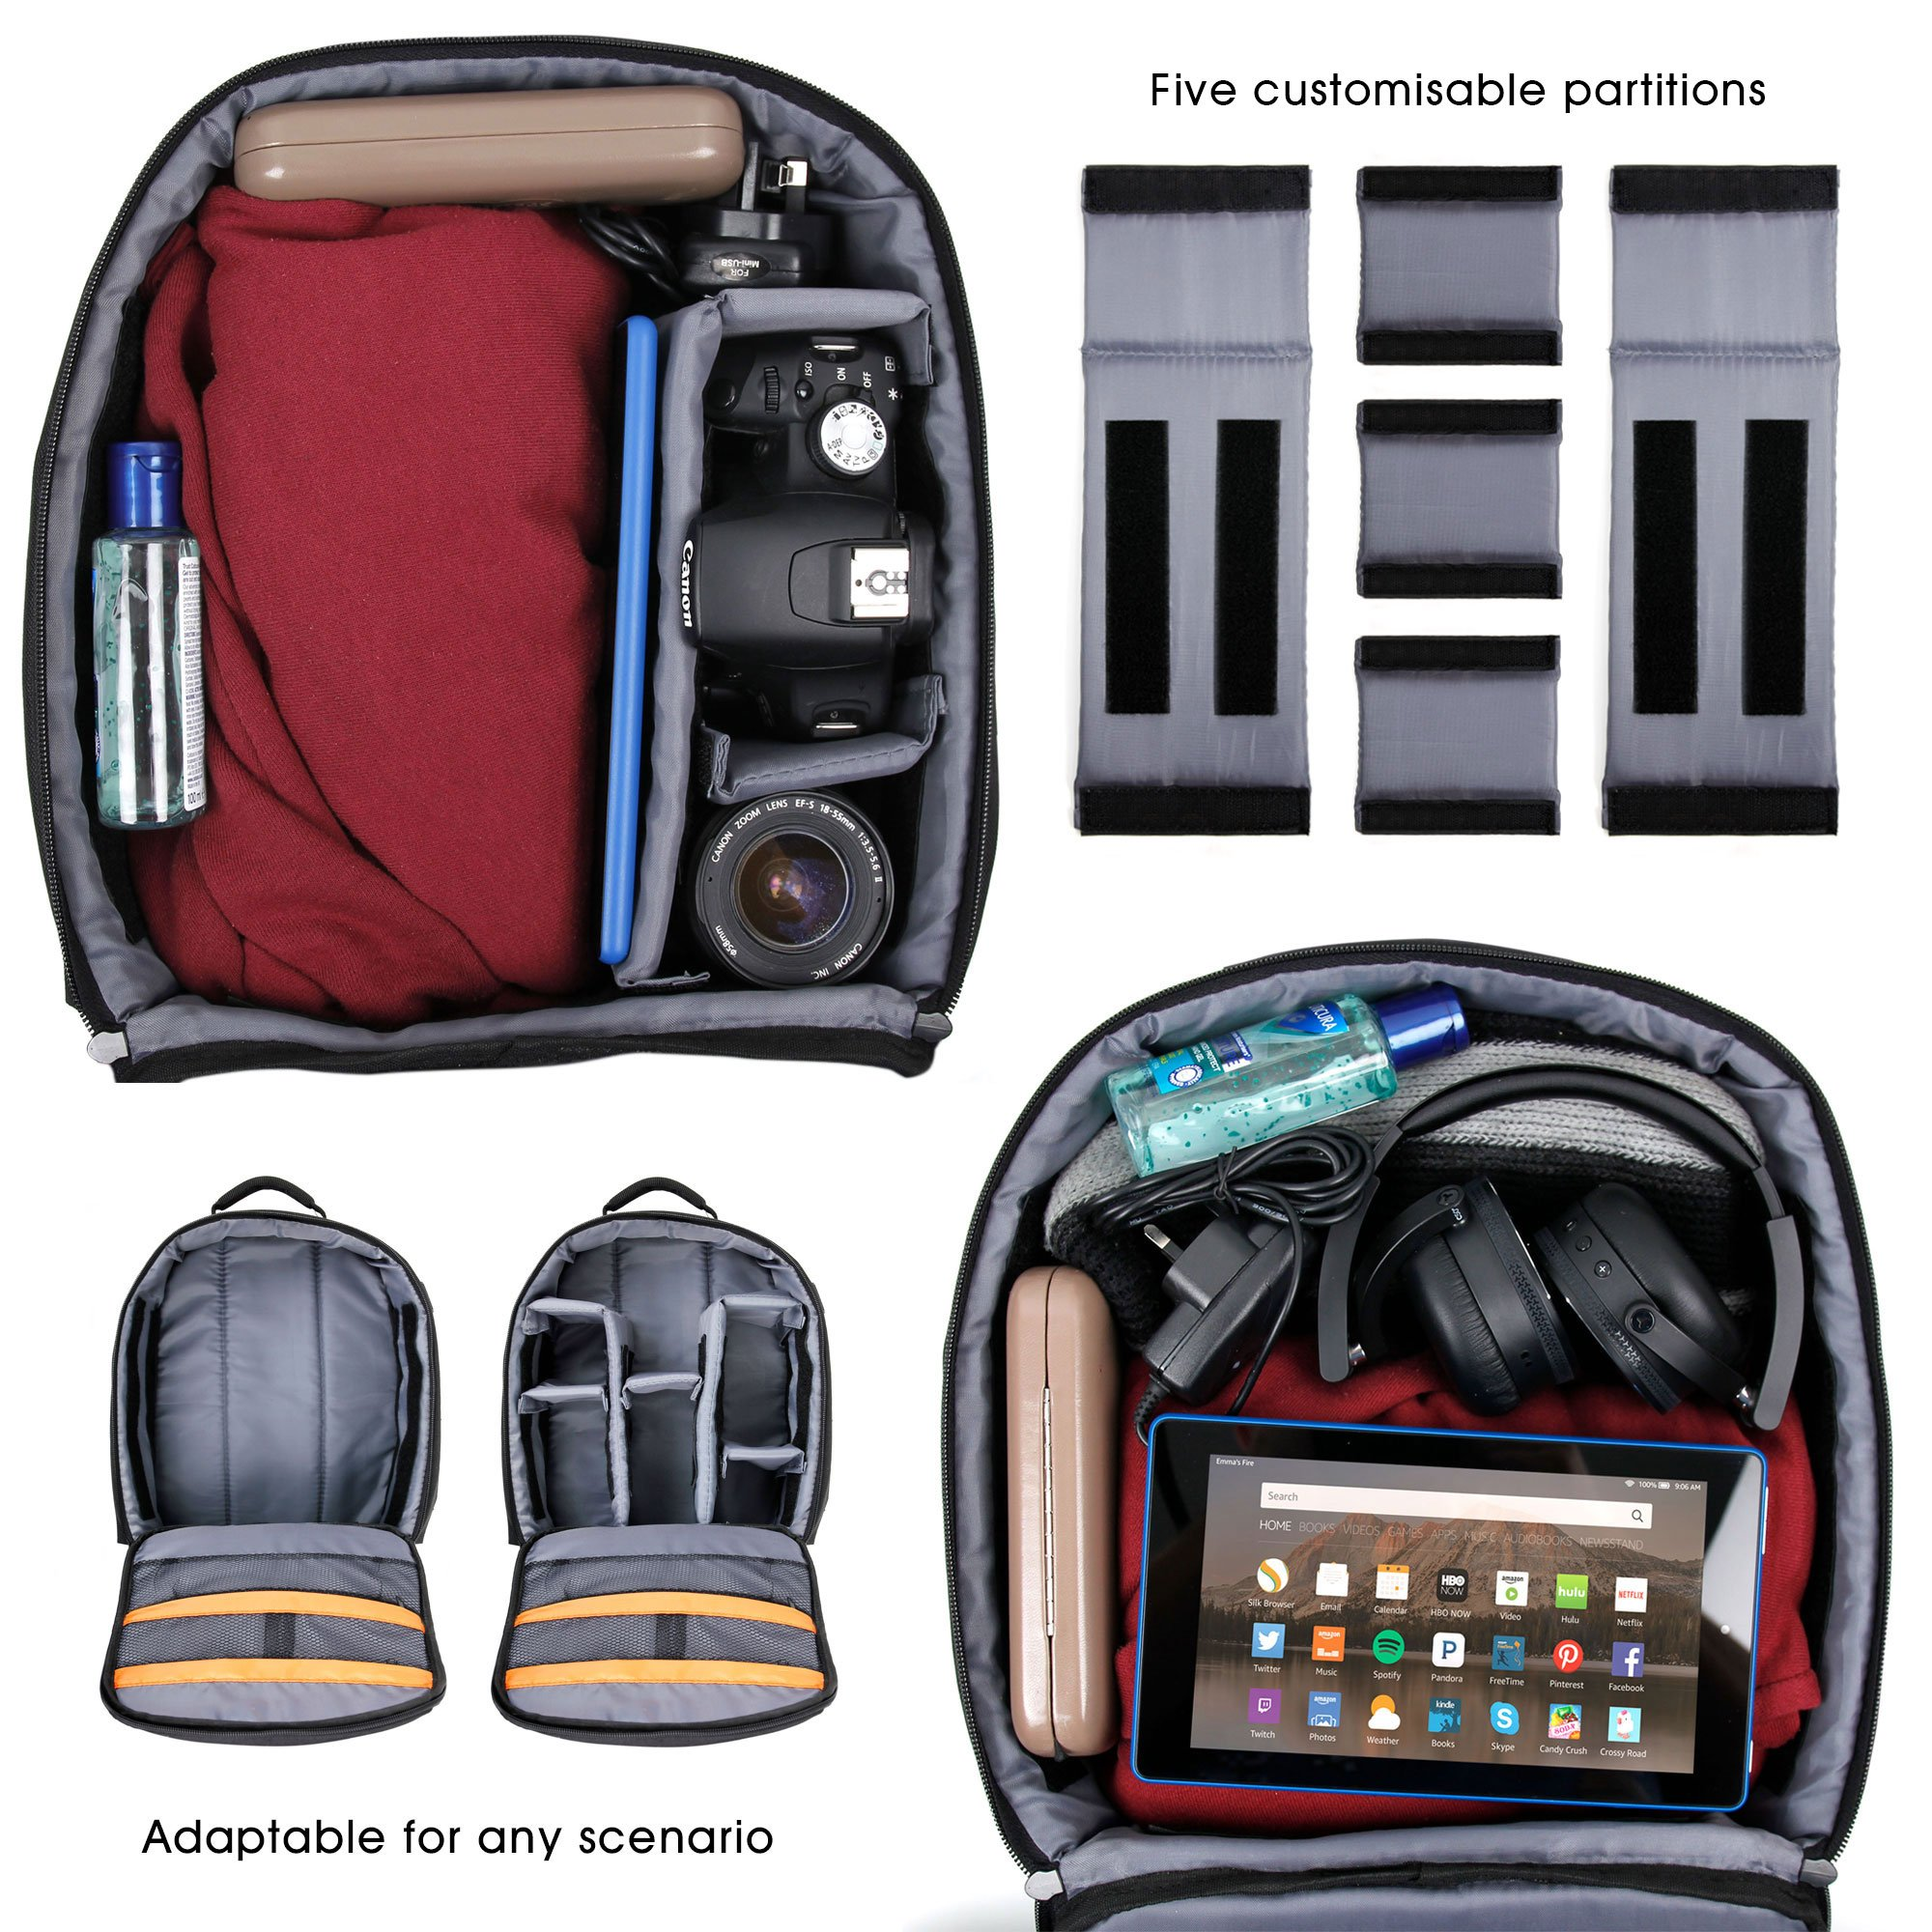 DURAGADGET Premium Quality, Water-Resistant Compact Backpack Organiser - Compatible with Sphero Ollie/Sphero Ball Robot - with Customisable Interior & Additional Raincover by DURAGADGET (Image #7)